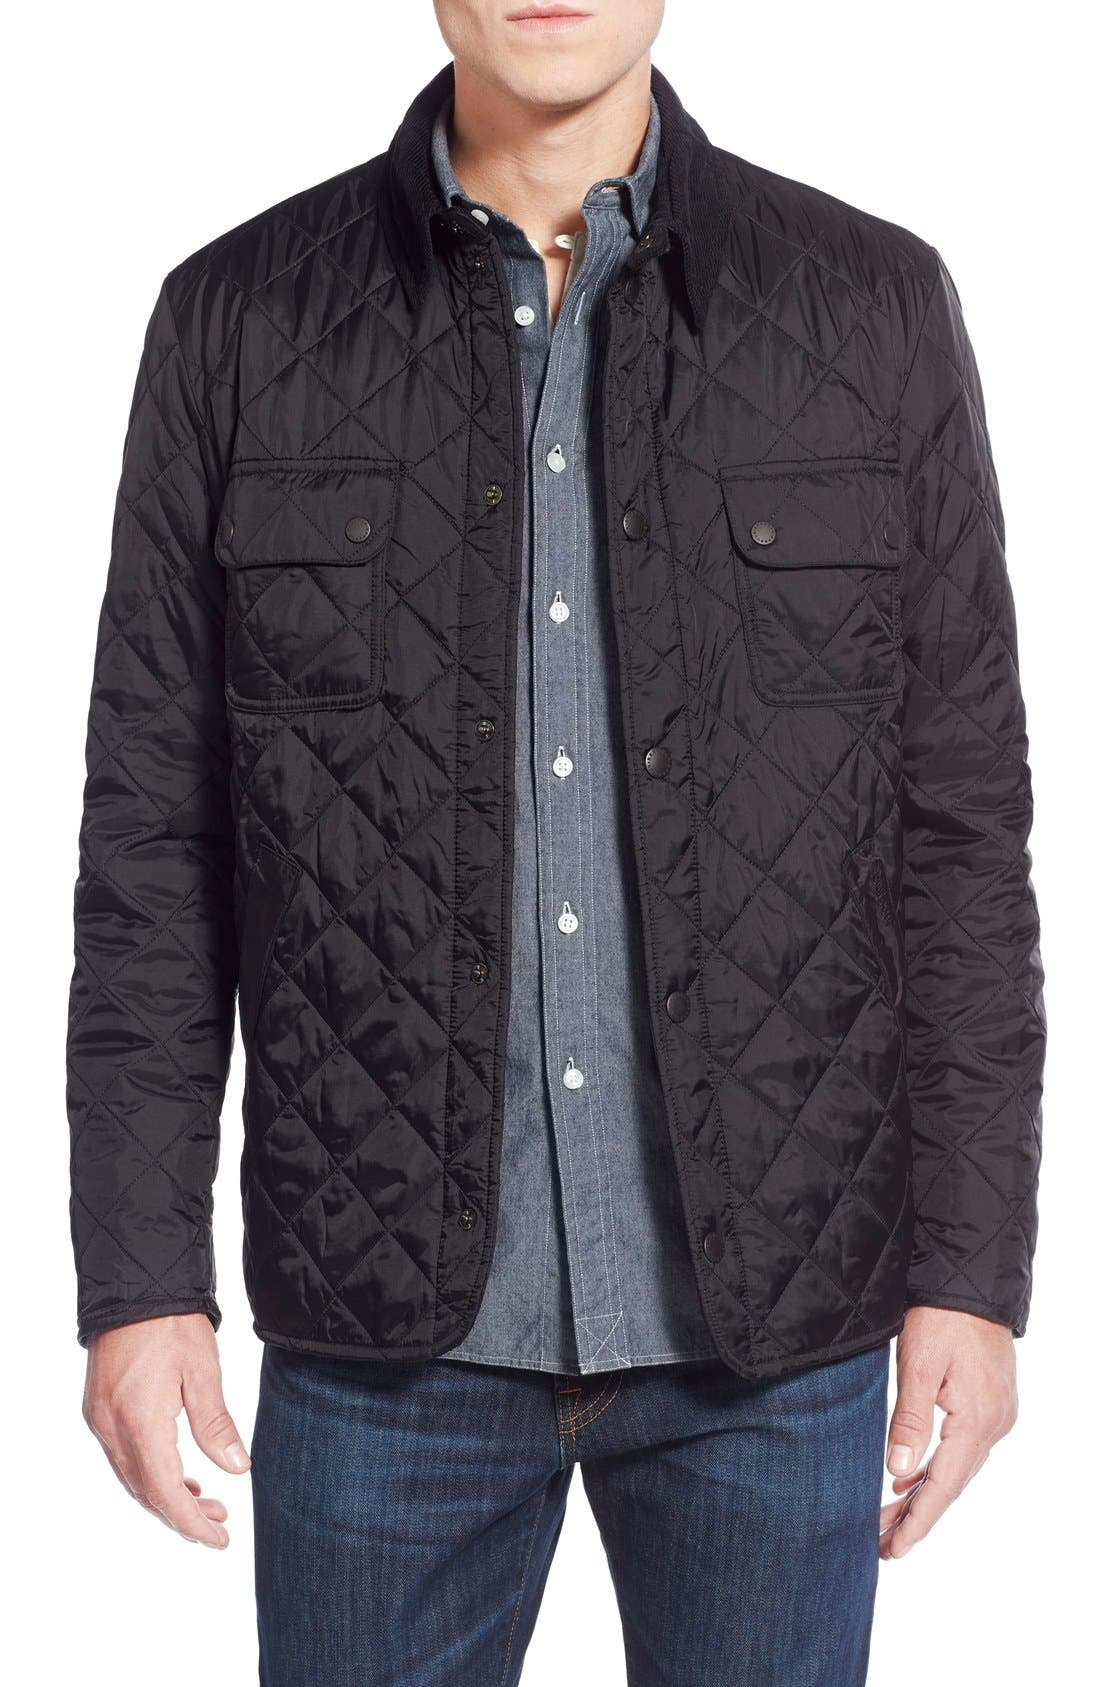 'Tinford' Regular Fit Quilted Jacket,                             Main thumbnail 1, color,                             001